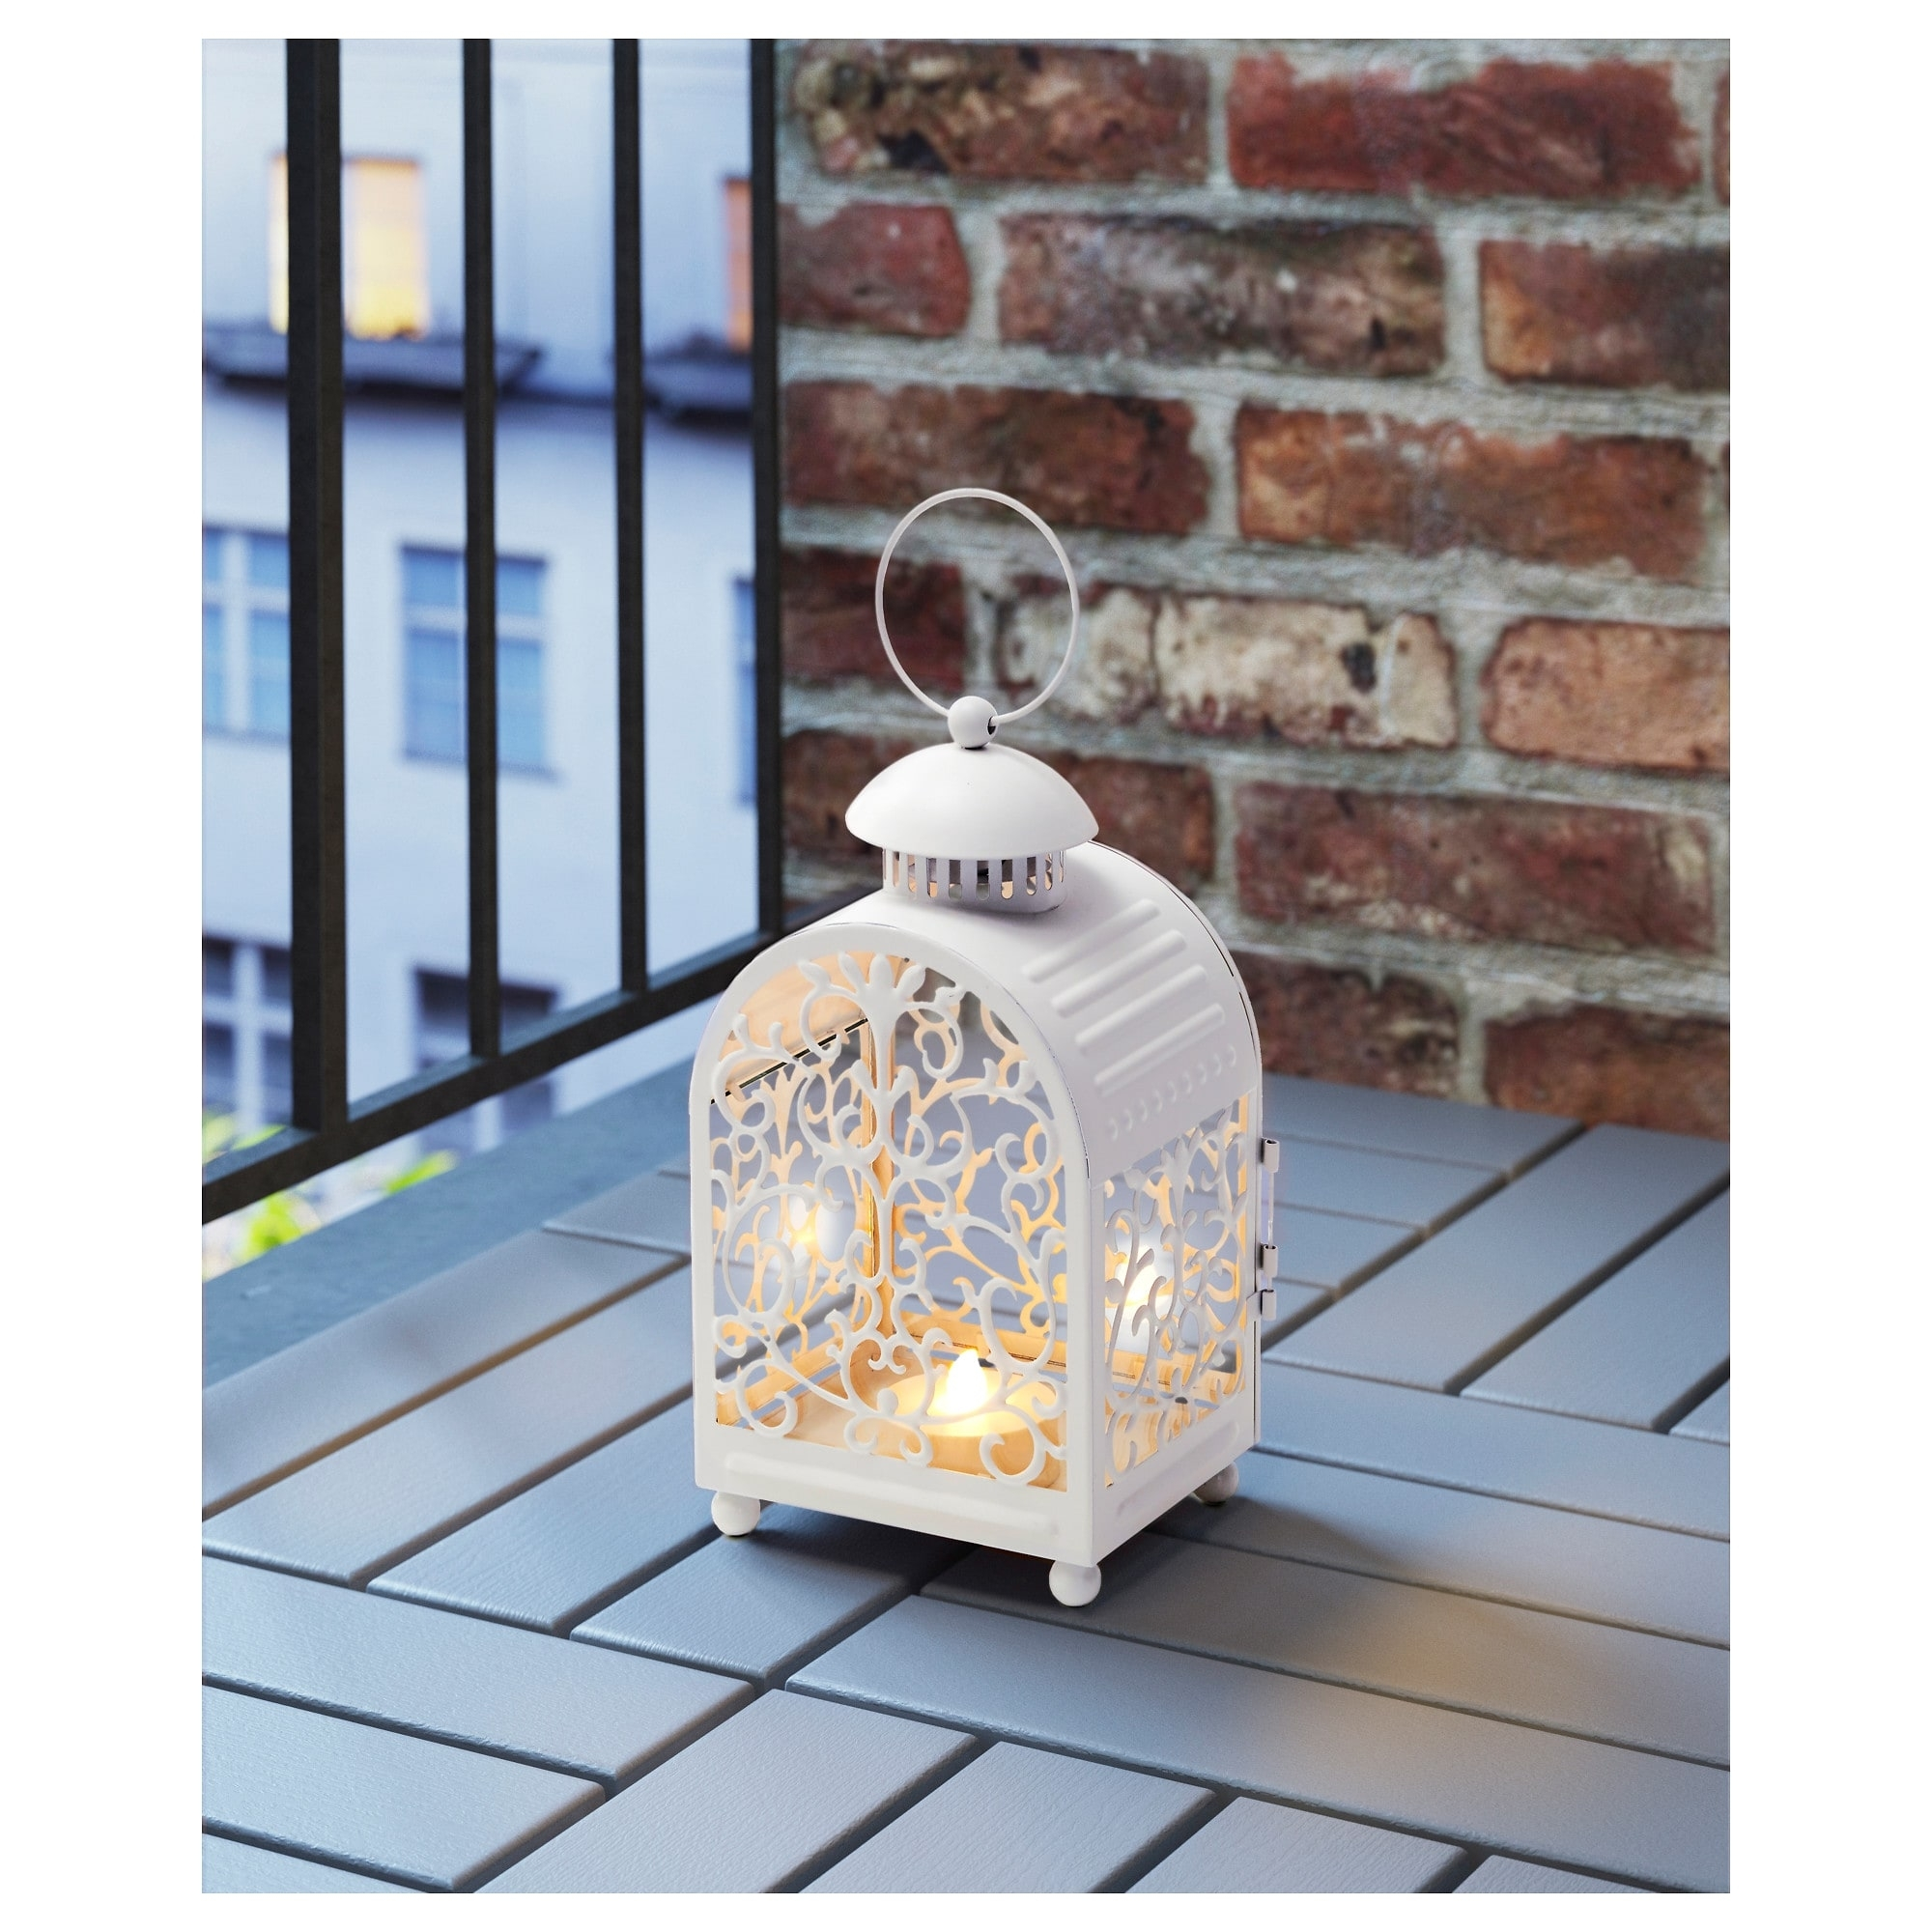 Gottgöra Lantern For Candle In Metal Cup In/outdoor White 26 Cm - Ikea inside Outdoor Metal Lanterns for Candles (Image 8 of 20)